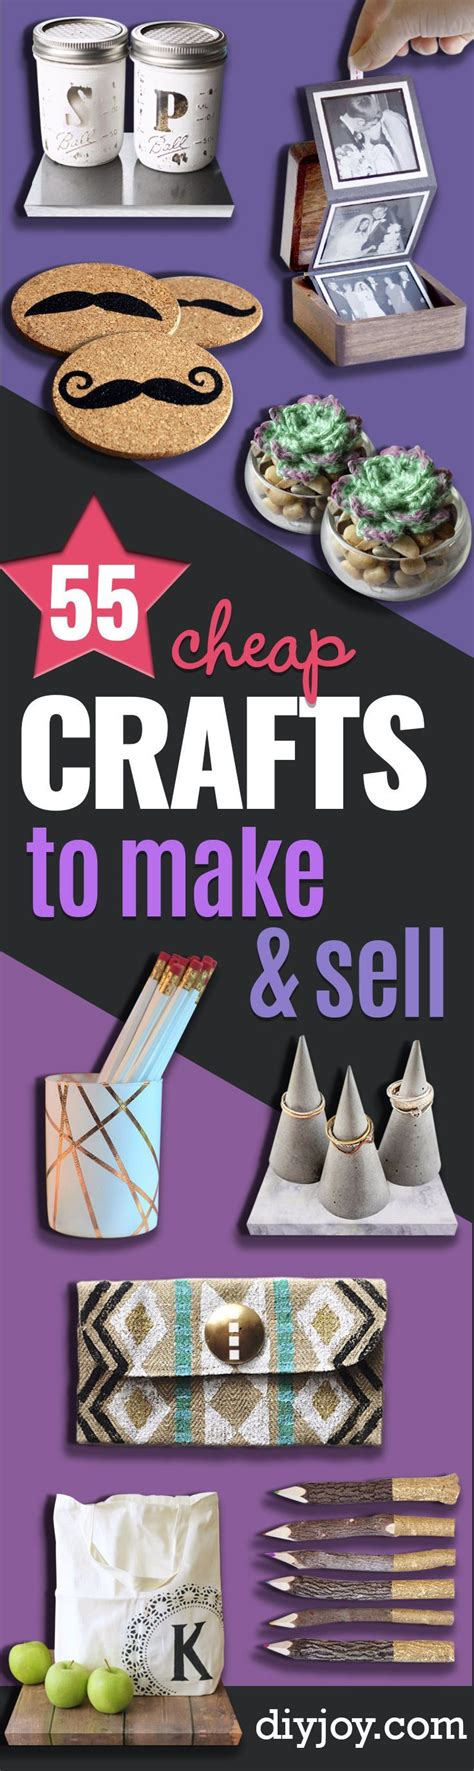 crafts to sell for 55 cheap crafts to make and sell gaver budget og gaveideer